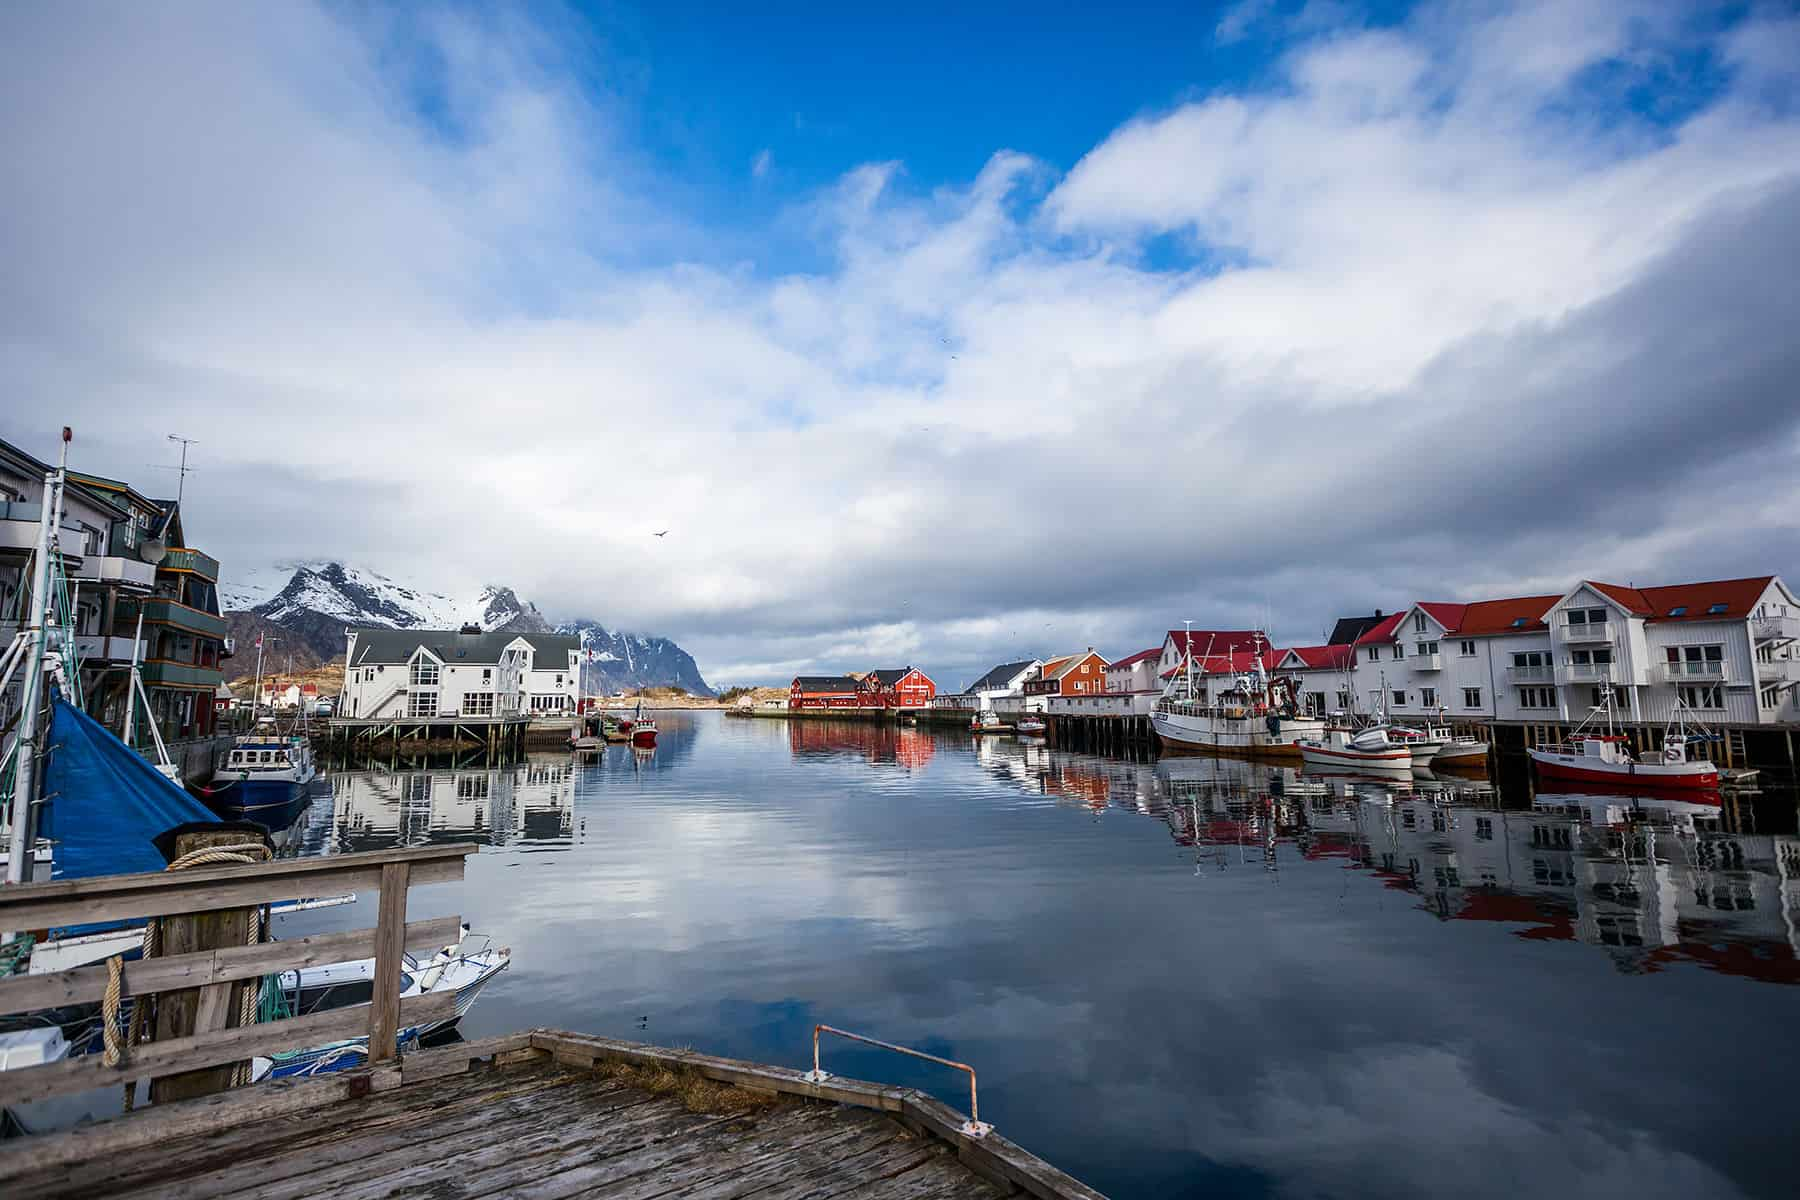 In the heart of the small village of Henningsvær. Definitely an idyllic place.